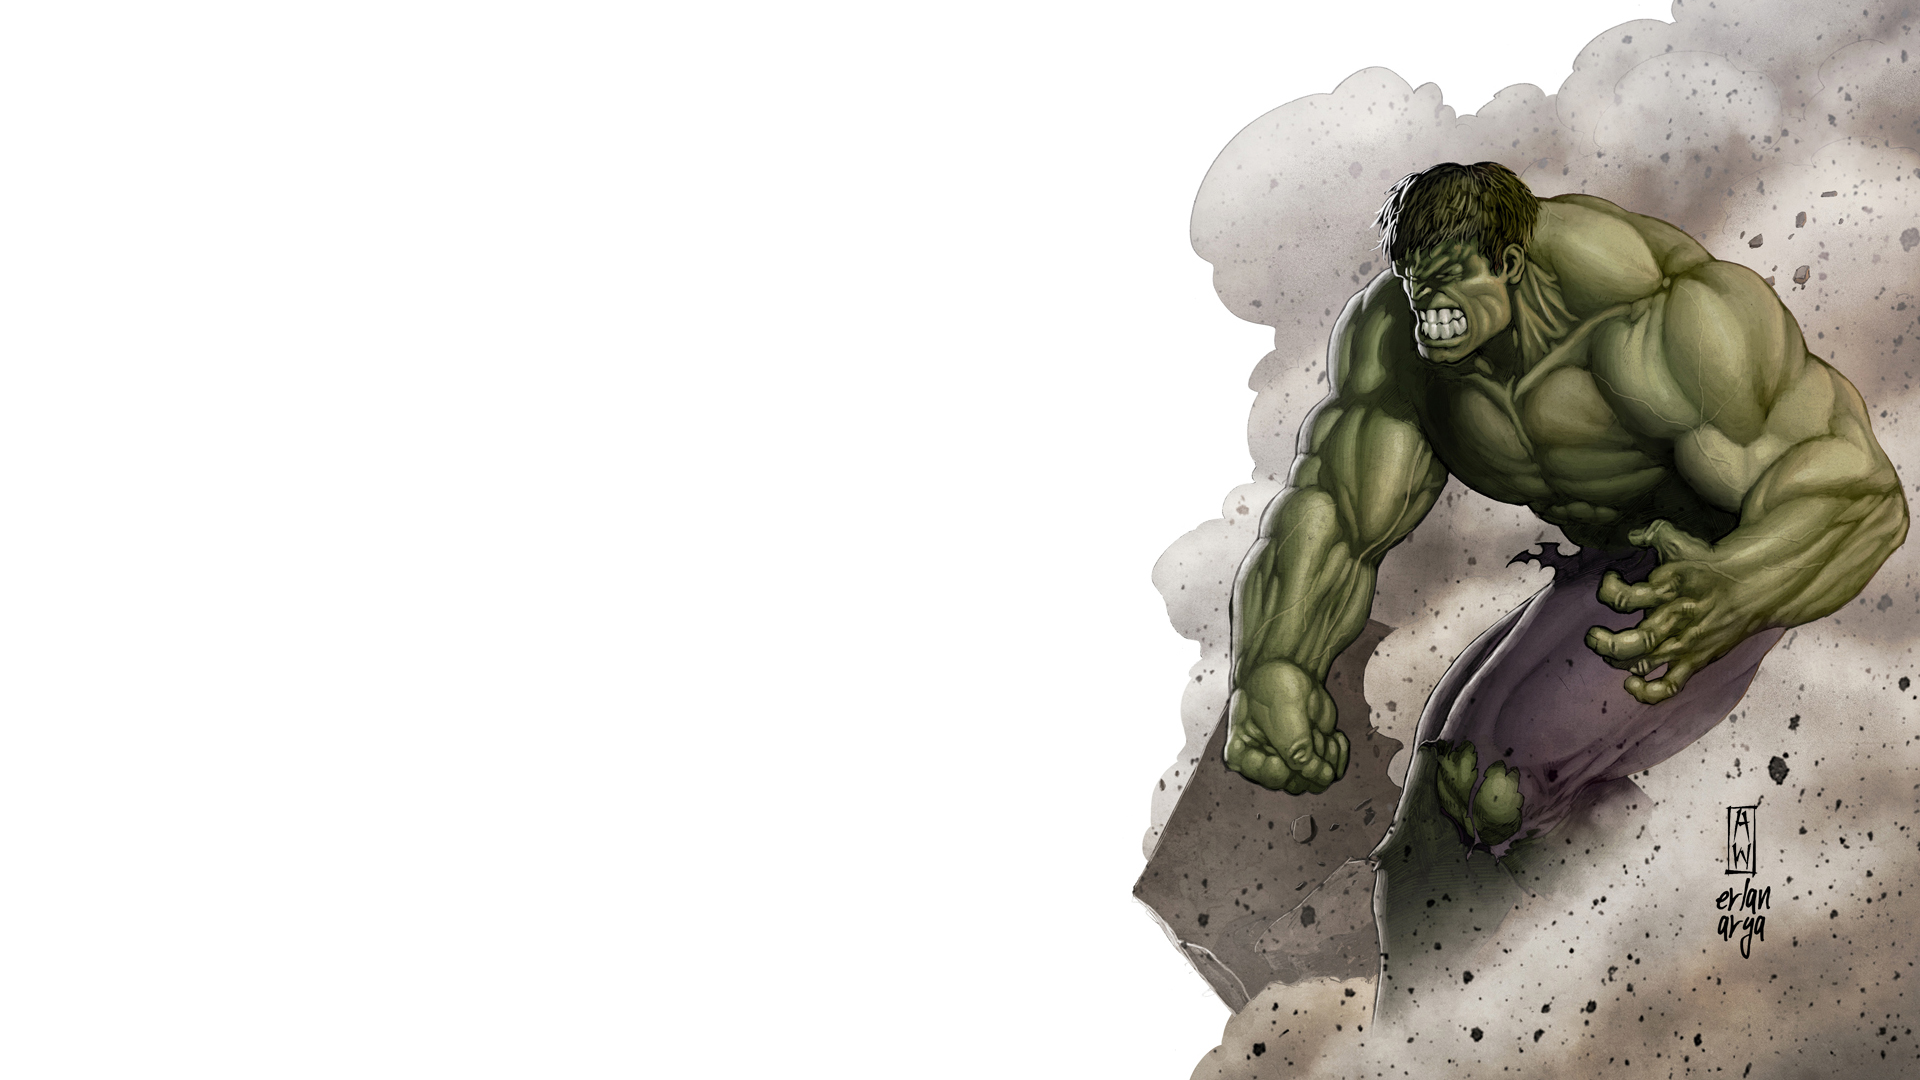 Hulk Wallpapers Amazing Hulk Wallpapers Collection 39 LLGL 1920x1080